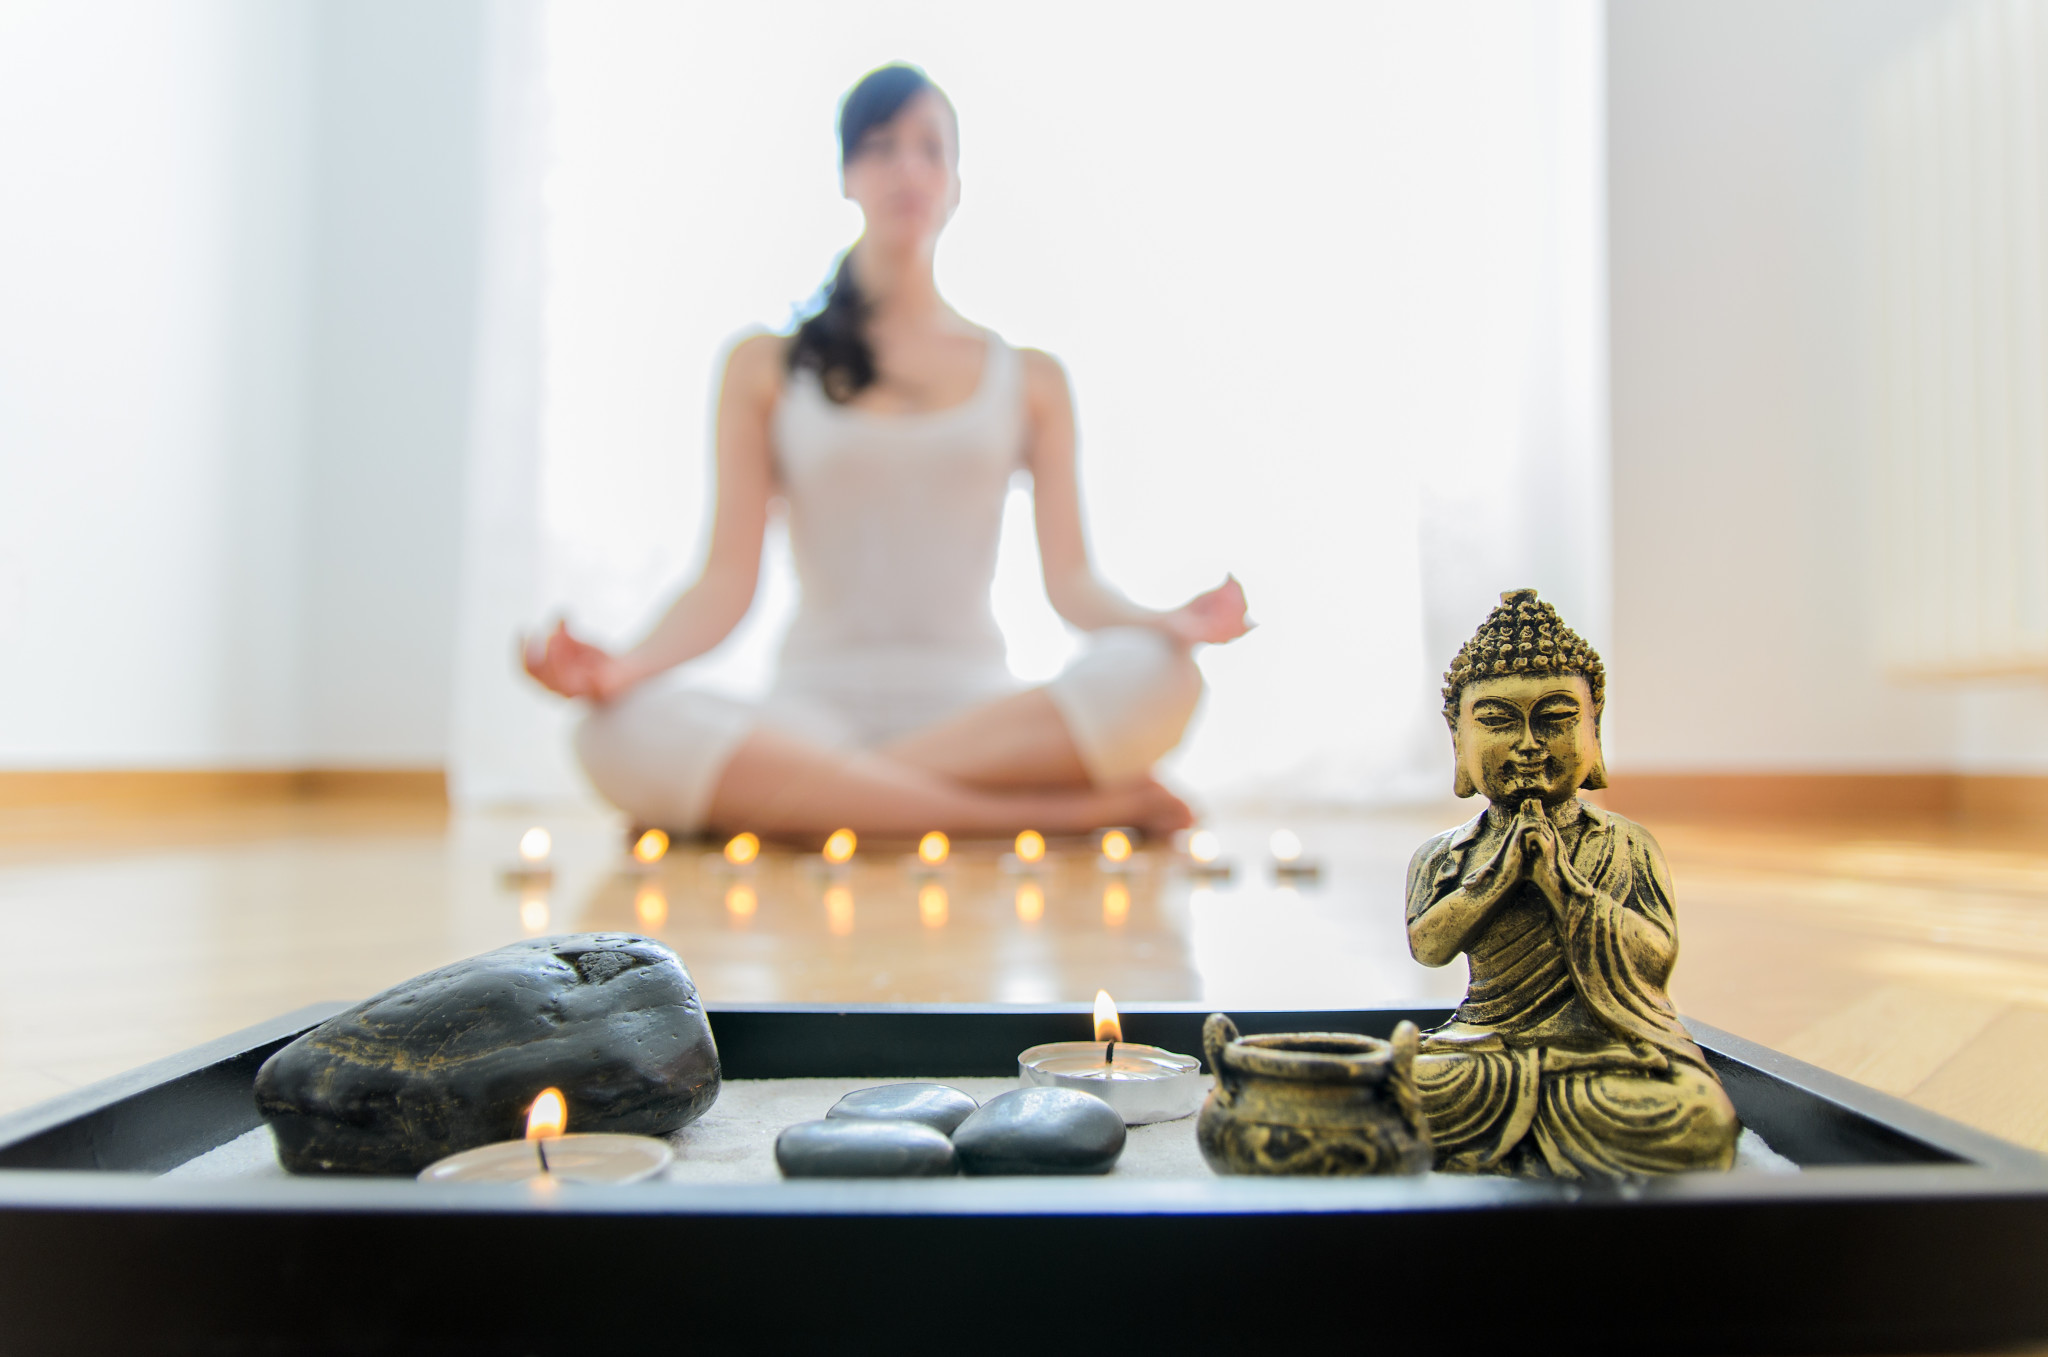 A small altar in the foreground with a figure of Buddha, candles, sand and stones. In the background, out of focus, the silhouette of a woman meditating in yoga posture, seated on the floor.